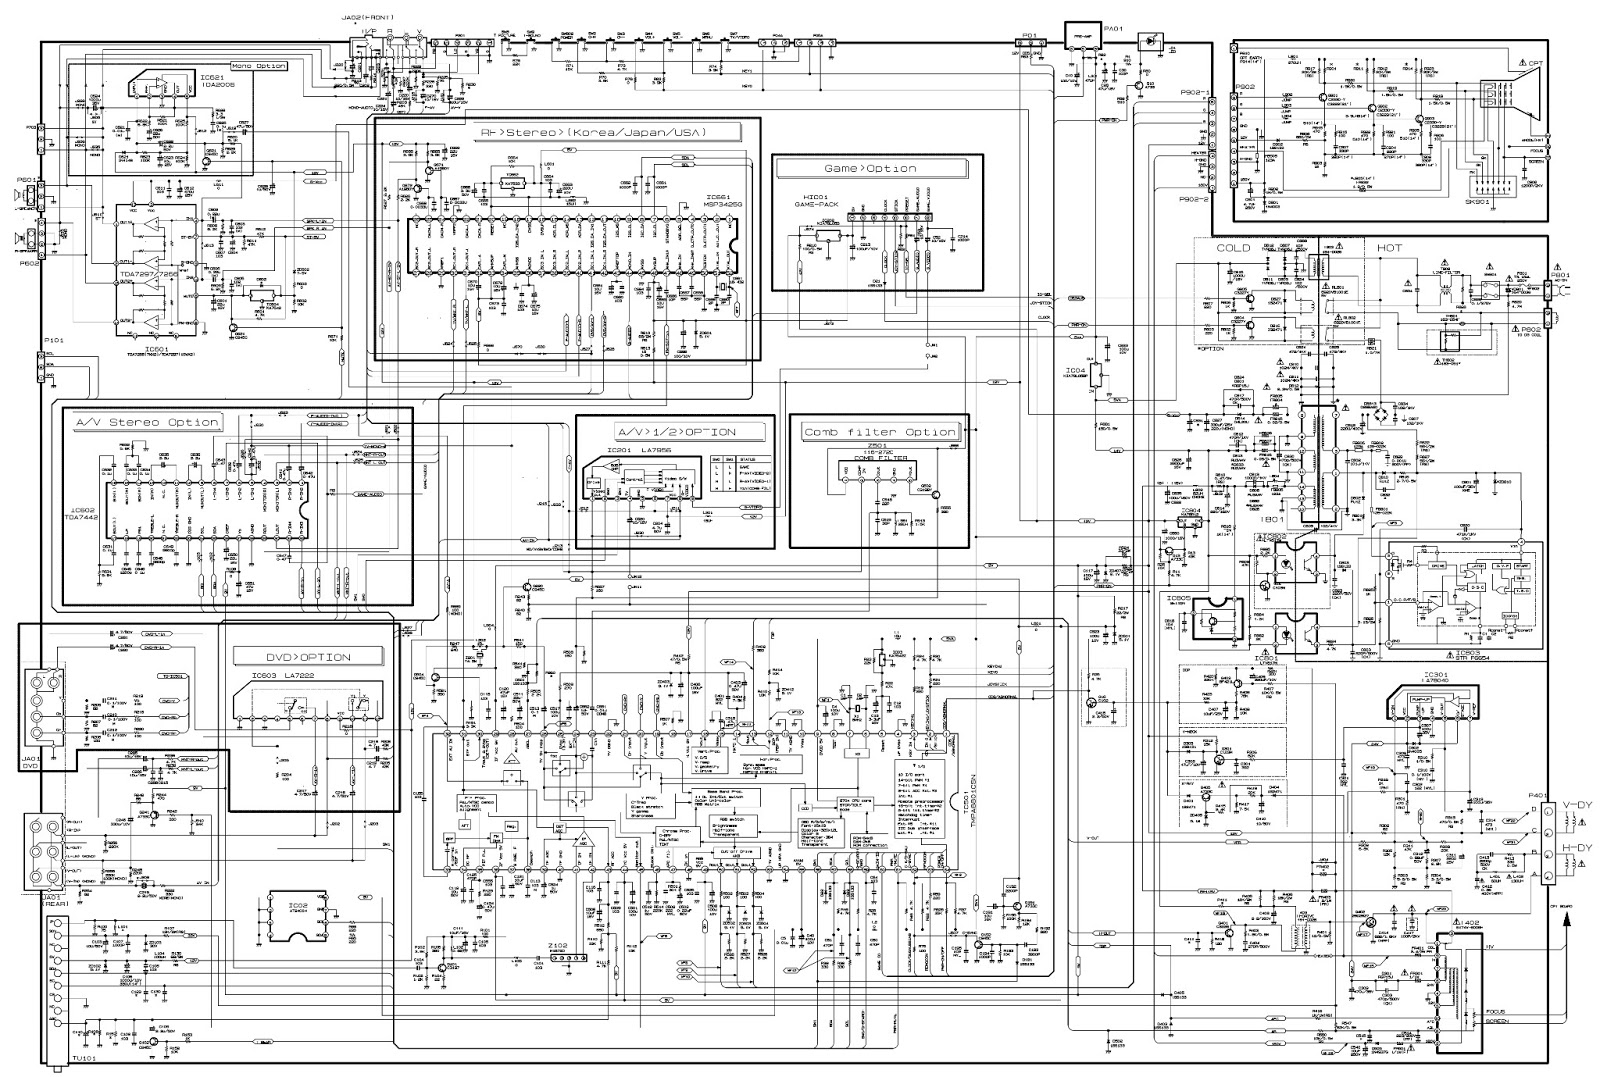 Ge Tv Schematic Explained Wiring Diagrams Lcd Diagram Free Download Sanyo